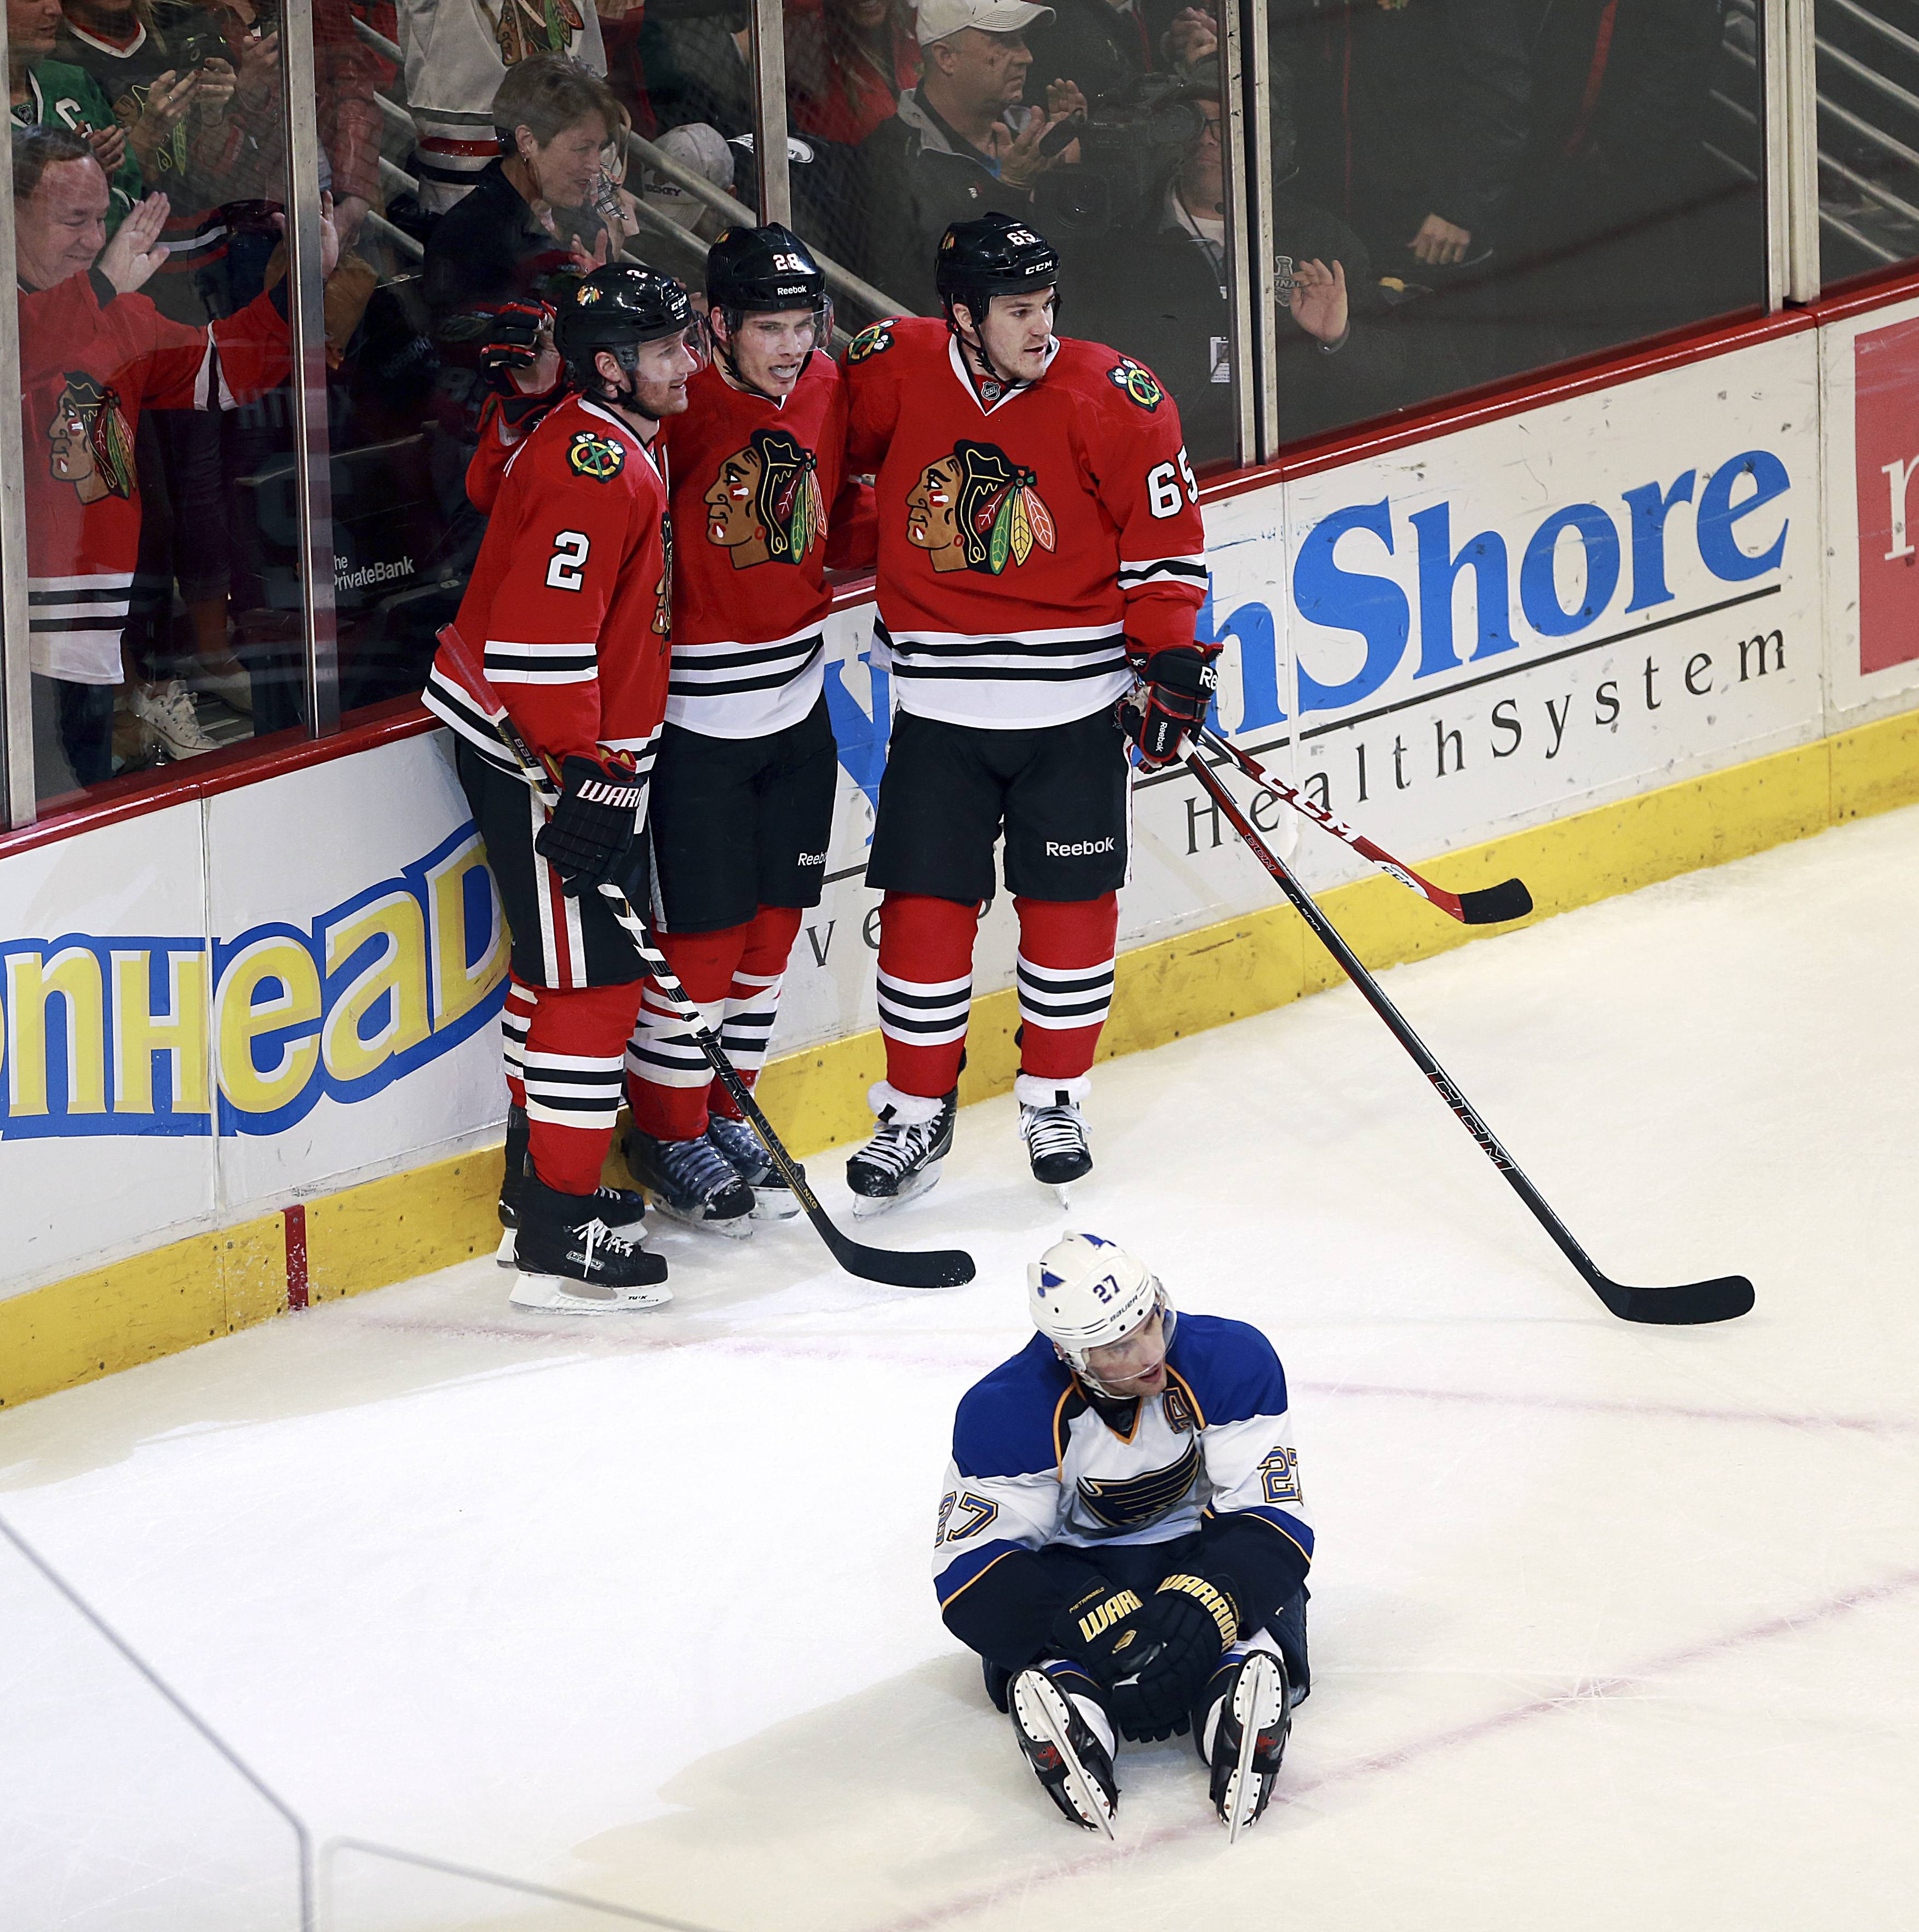 Chicago Blackhawks' Duncan Keith, left, Ben Smith, center, and Andrew Shaw celebrate after Smith's empty net goal as St Louis Blues' Alexander Pietrangelo, front, sits on the ice in the third period of an NHL hockey game in Chicago on Sunday, April 6, 2014. The Blackhawks won 4-2.